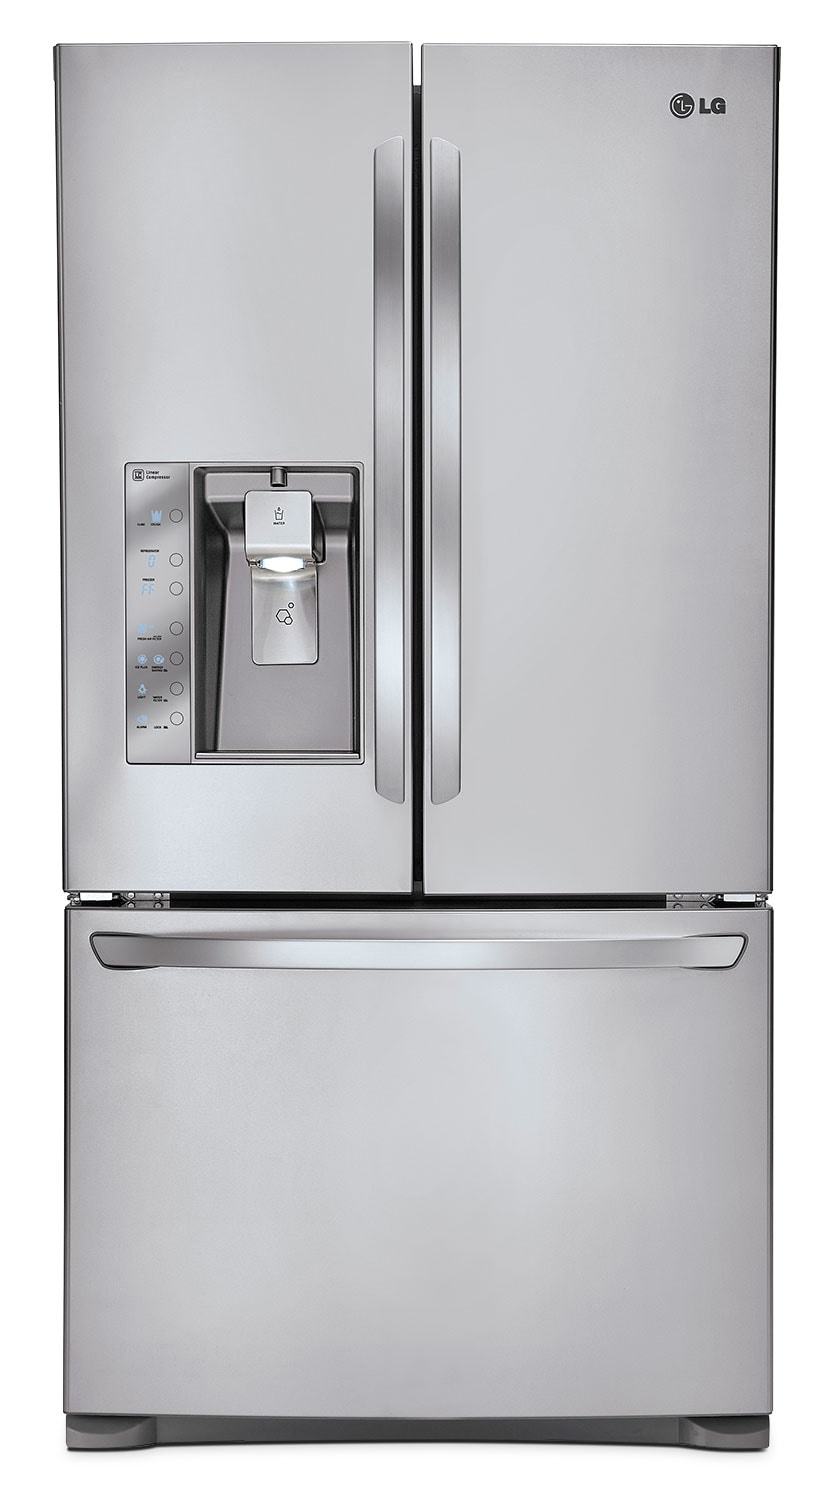 Refrigerators and Freezers - LG Appliances Stainless Steel French Door Refrigerator (24 Cu. Ft.) - LFXC24726S